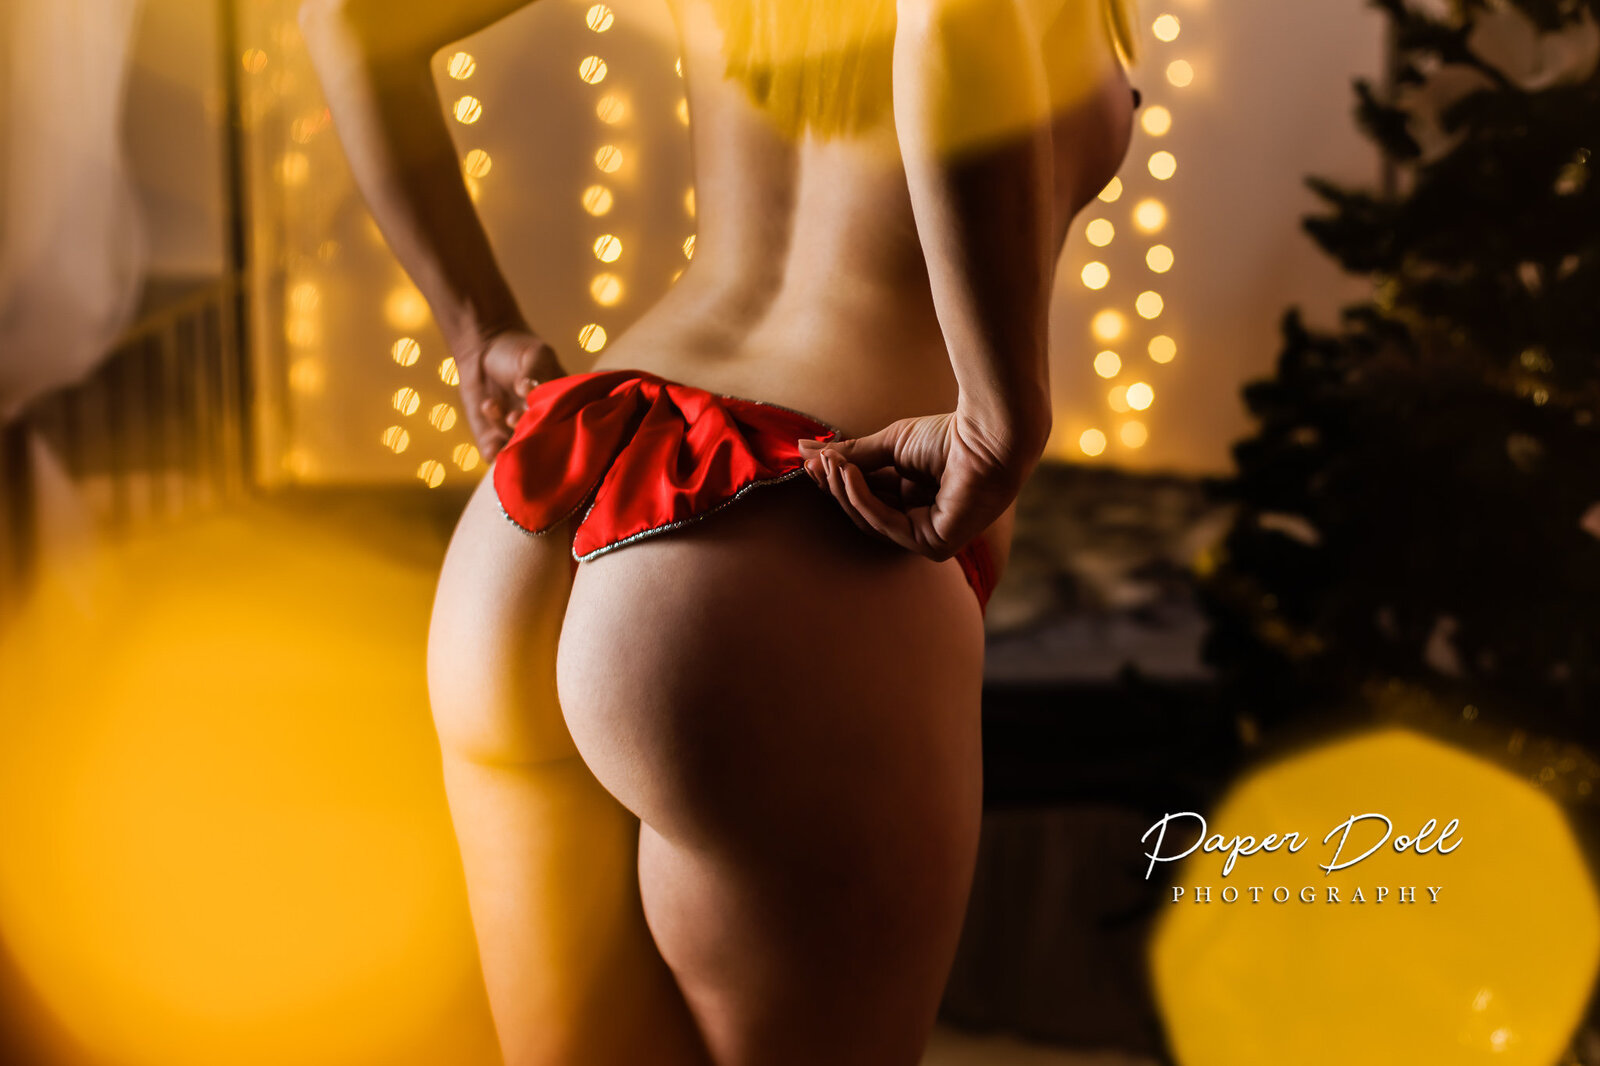 Christmas boudoir photo with a bow on a woman's butt